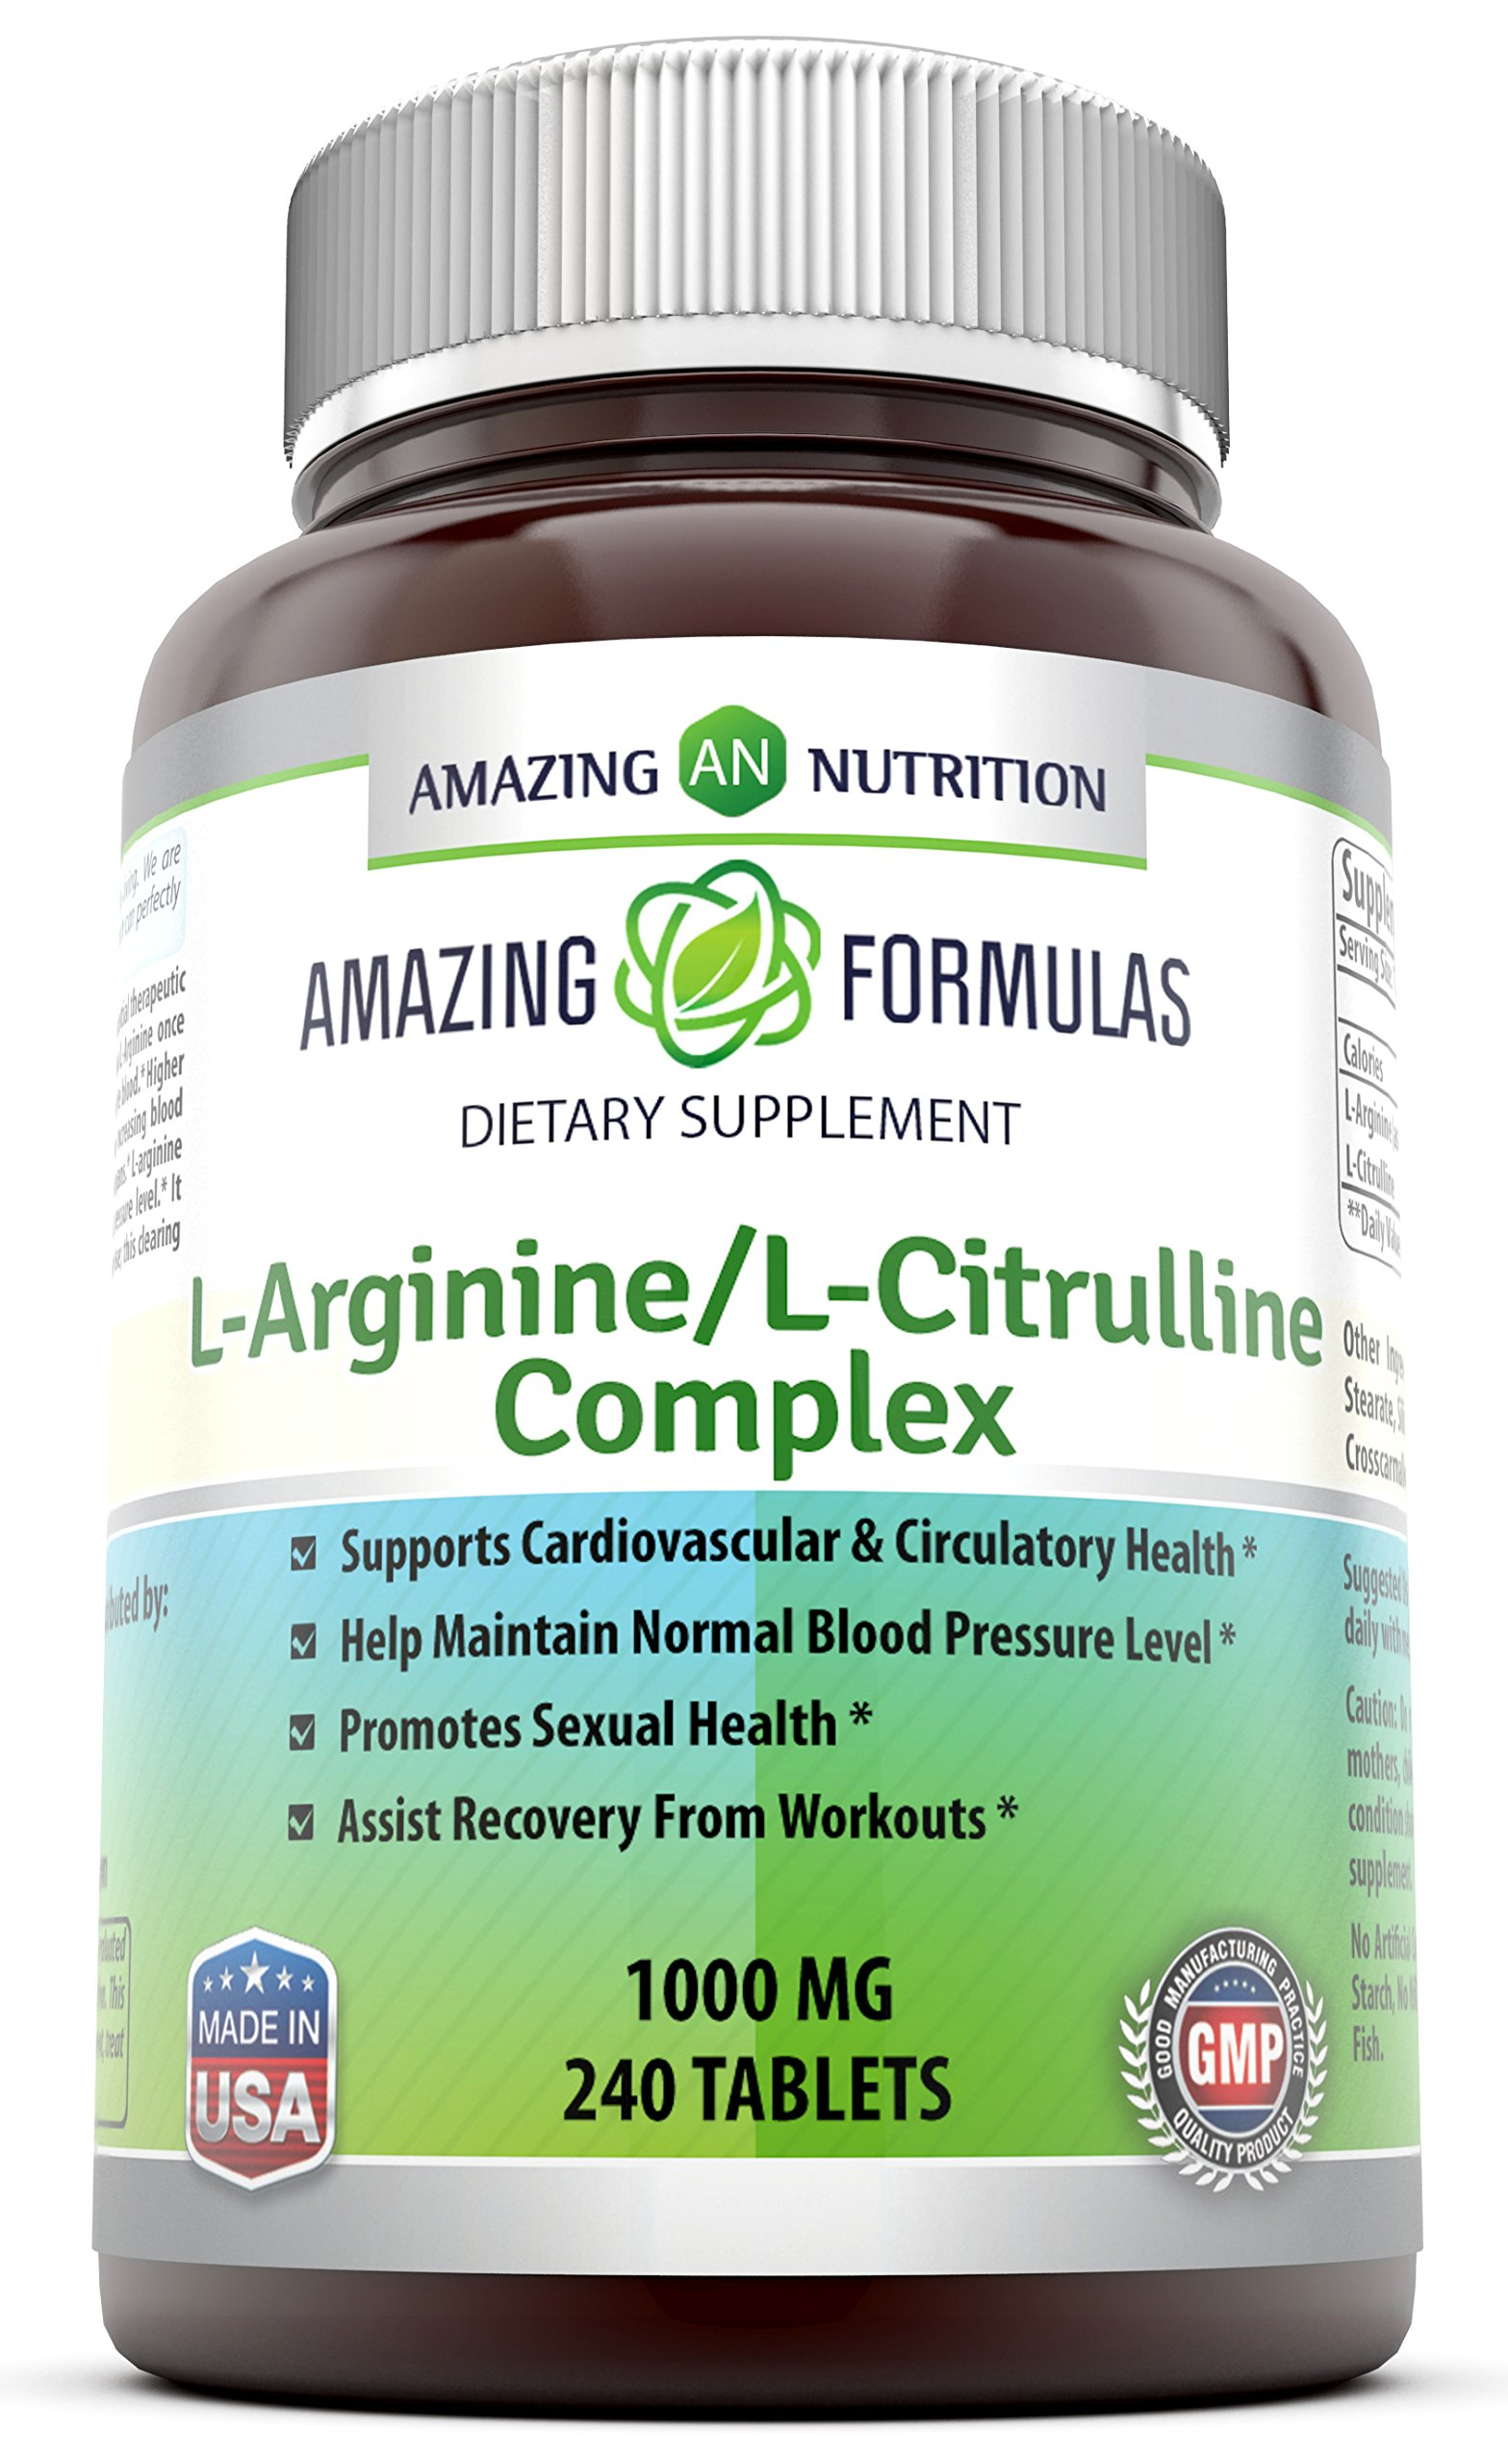 Amazing Formulas L-Arginine/L-Citrulline Complex - 1000 Mg, 240 Tablets (Non-GMO) - Supports Cardiovascular & Circulatory Health - Promotes Sexual Health - Assists Recovery from Workouts.